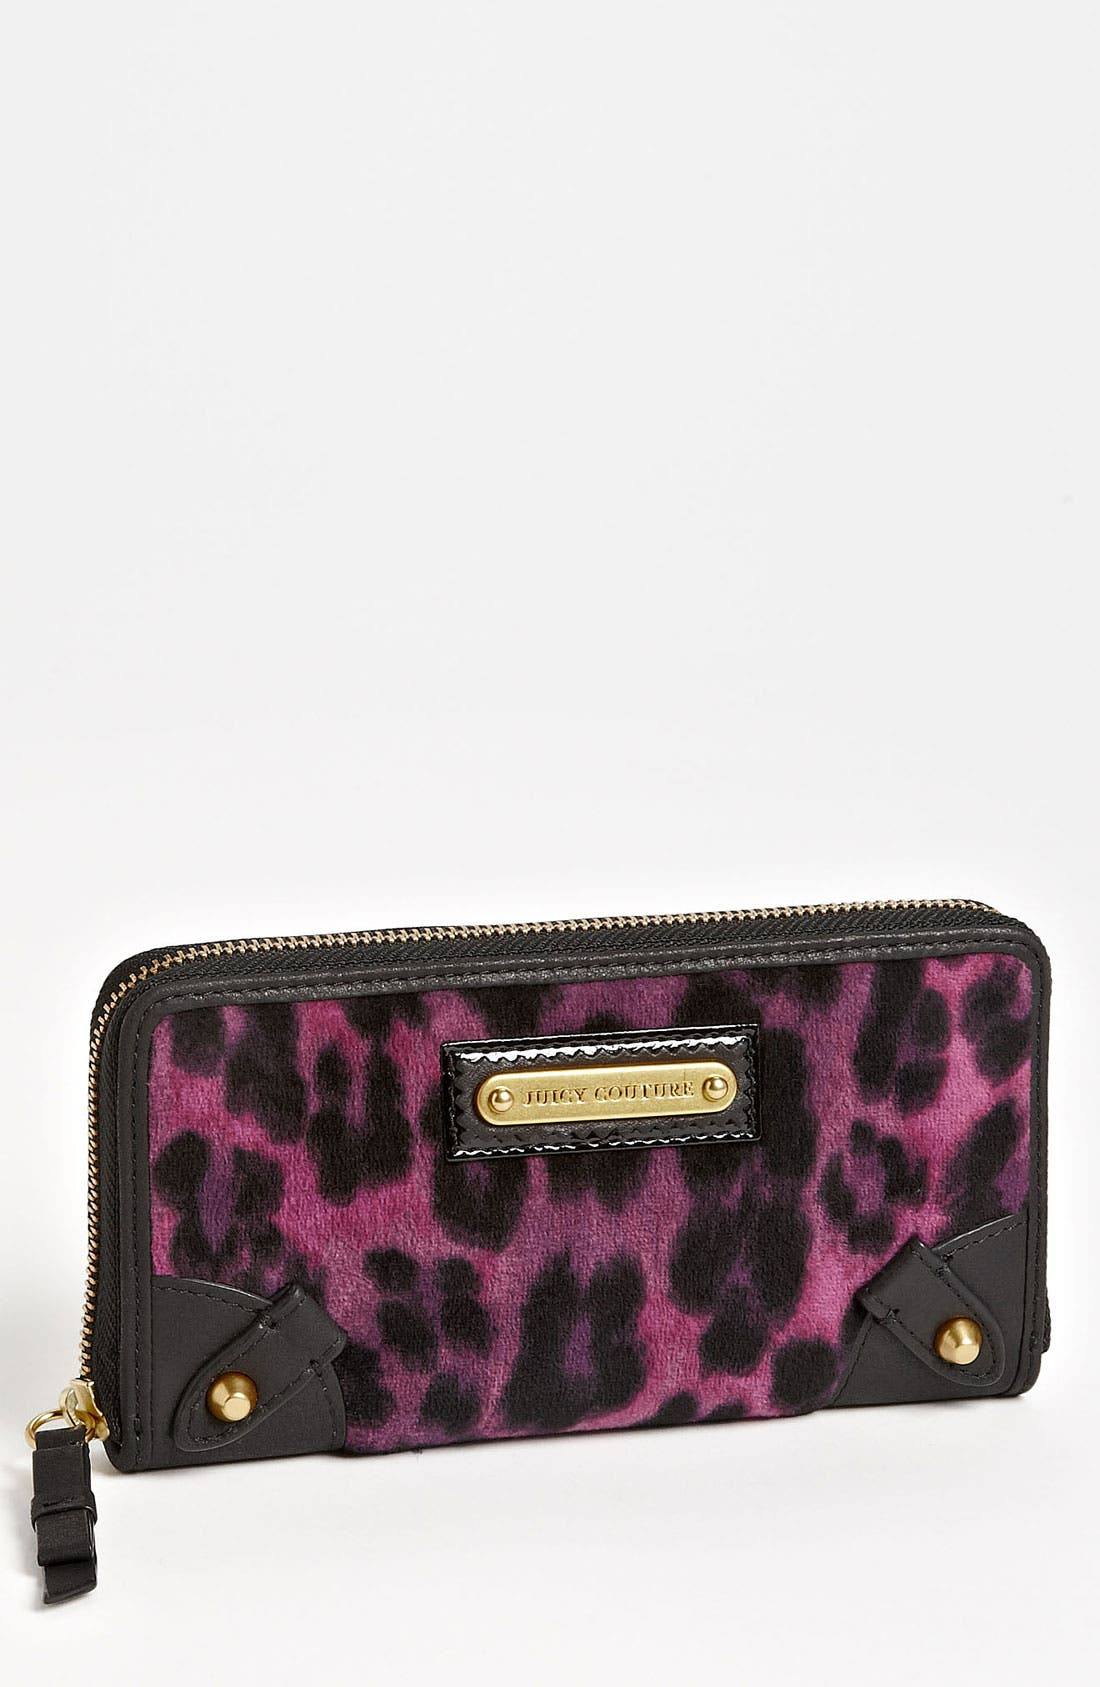 Main Image - Juicy Couture 'Wild Things' Zip Wallet